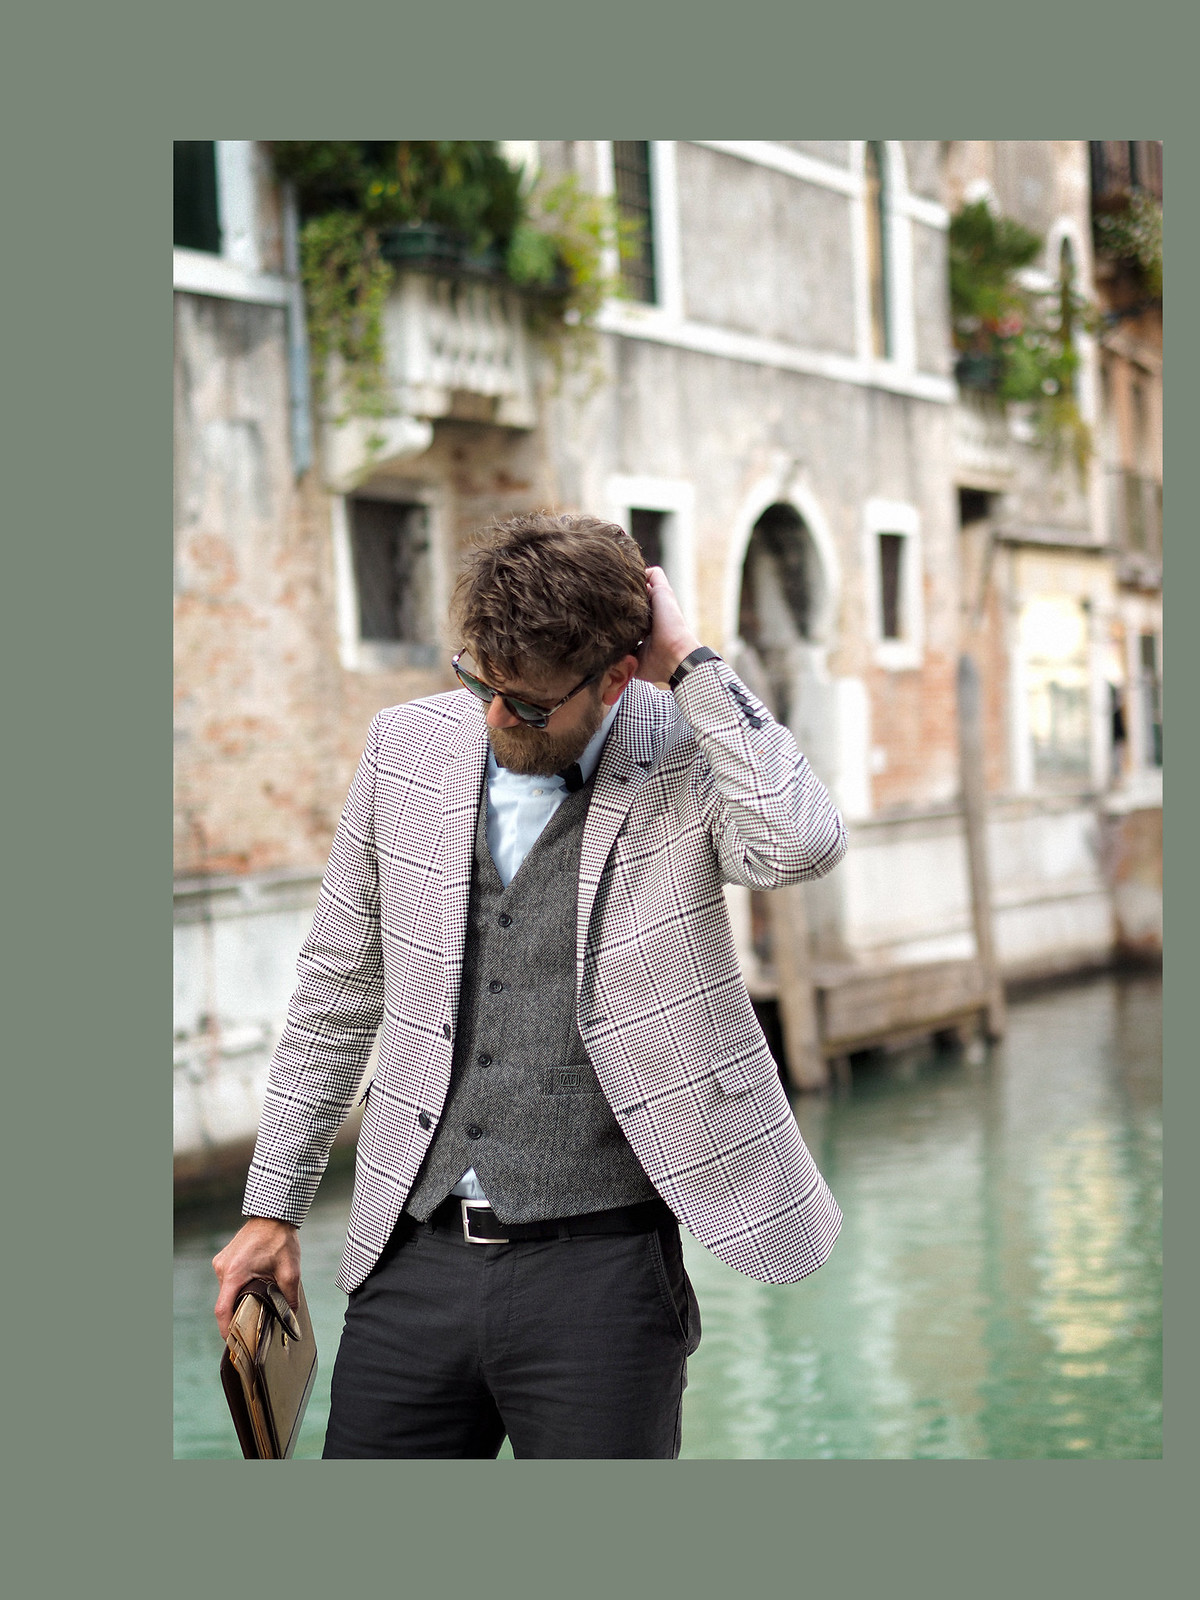 outfit professor glen check blazer autumn trend persol sunglasses intellectual style uni university prof sacha shoes bow tie elegant dandy style indiana jones venice look cats & dogs blog max bechmann 2